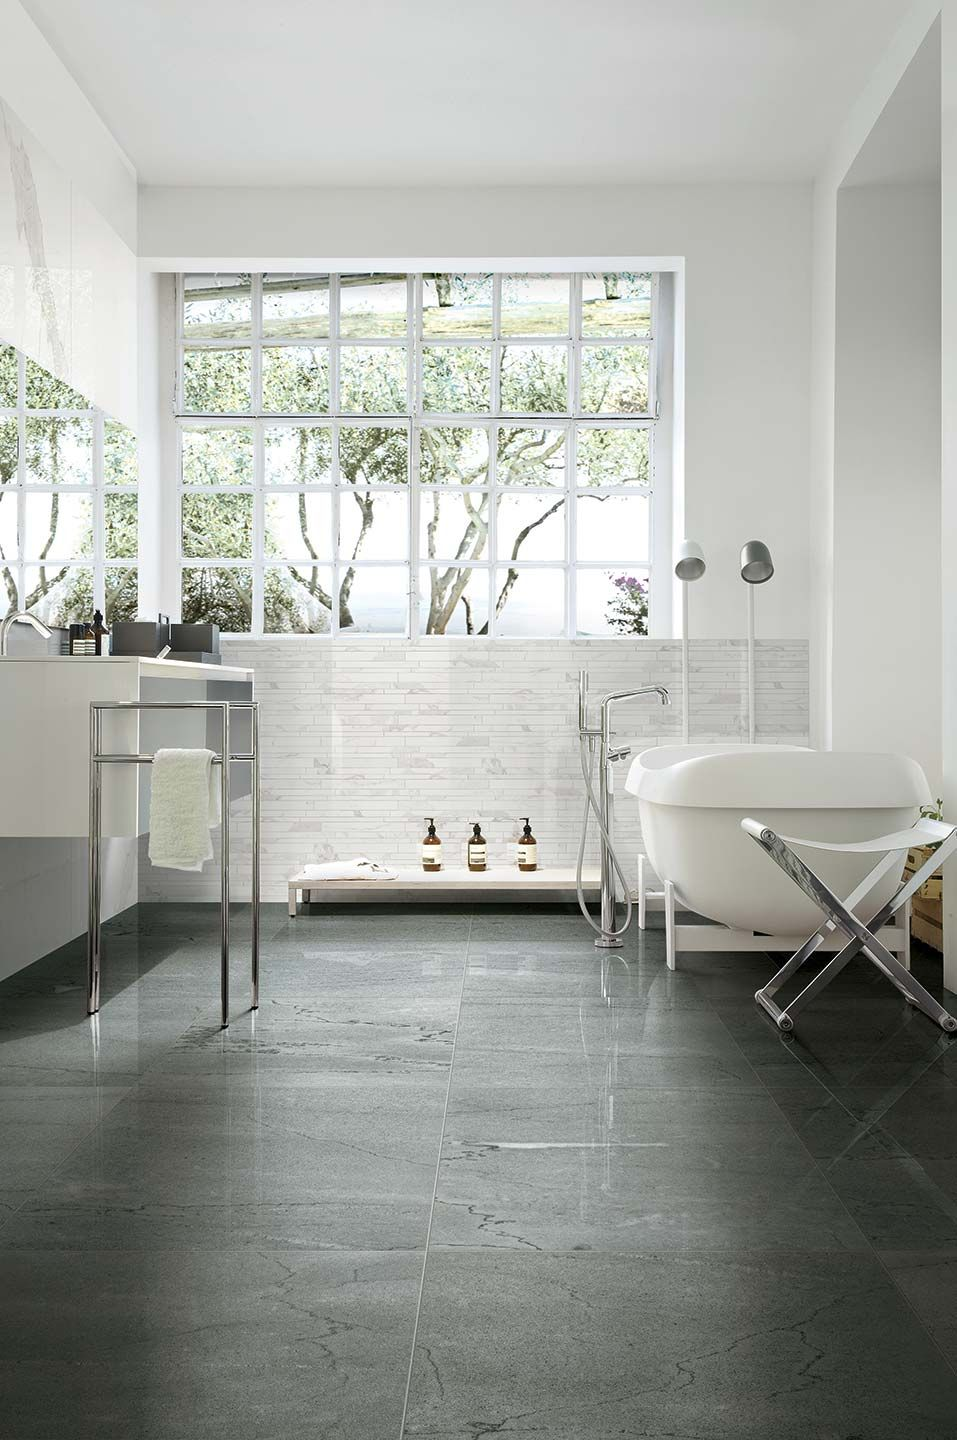 timeless - cerim・kitchen and bathroom tiles, home design in